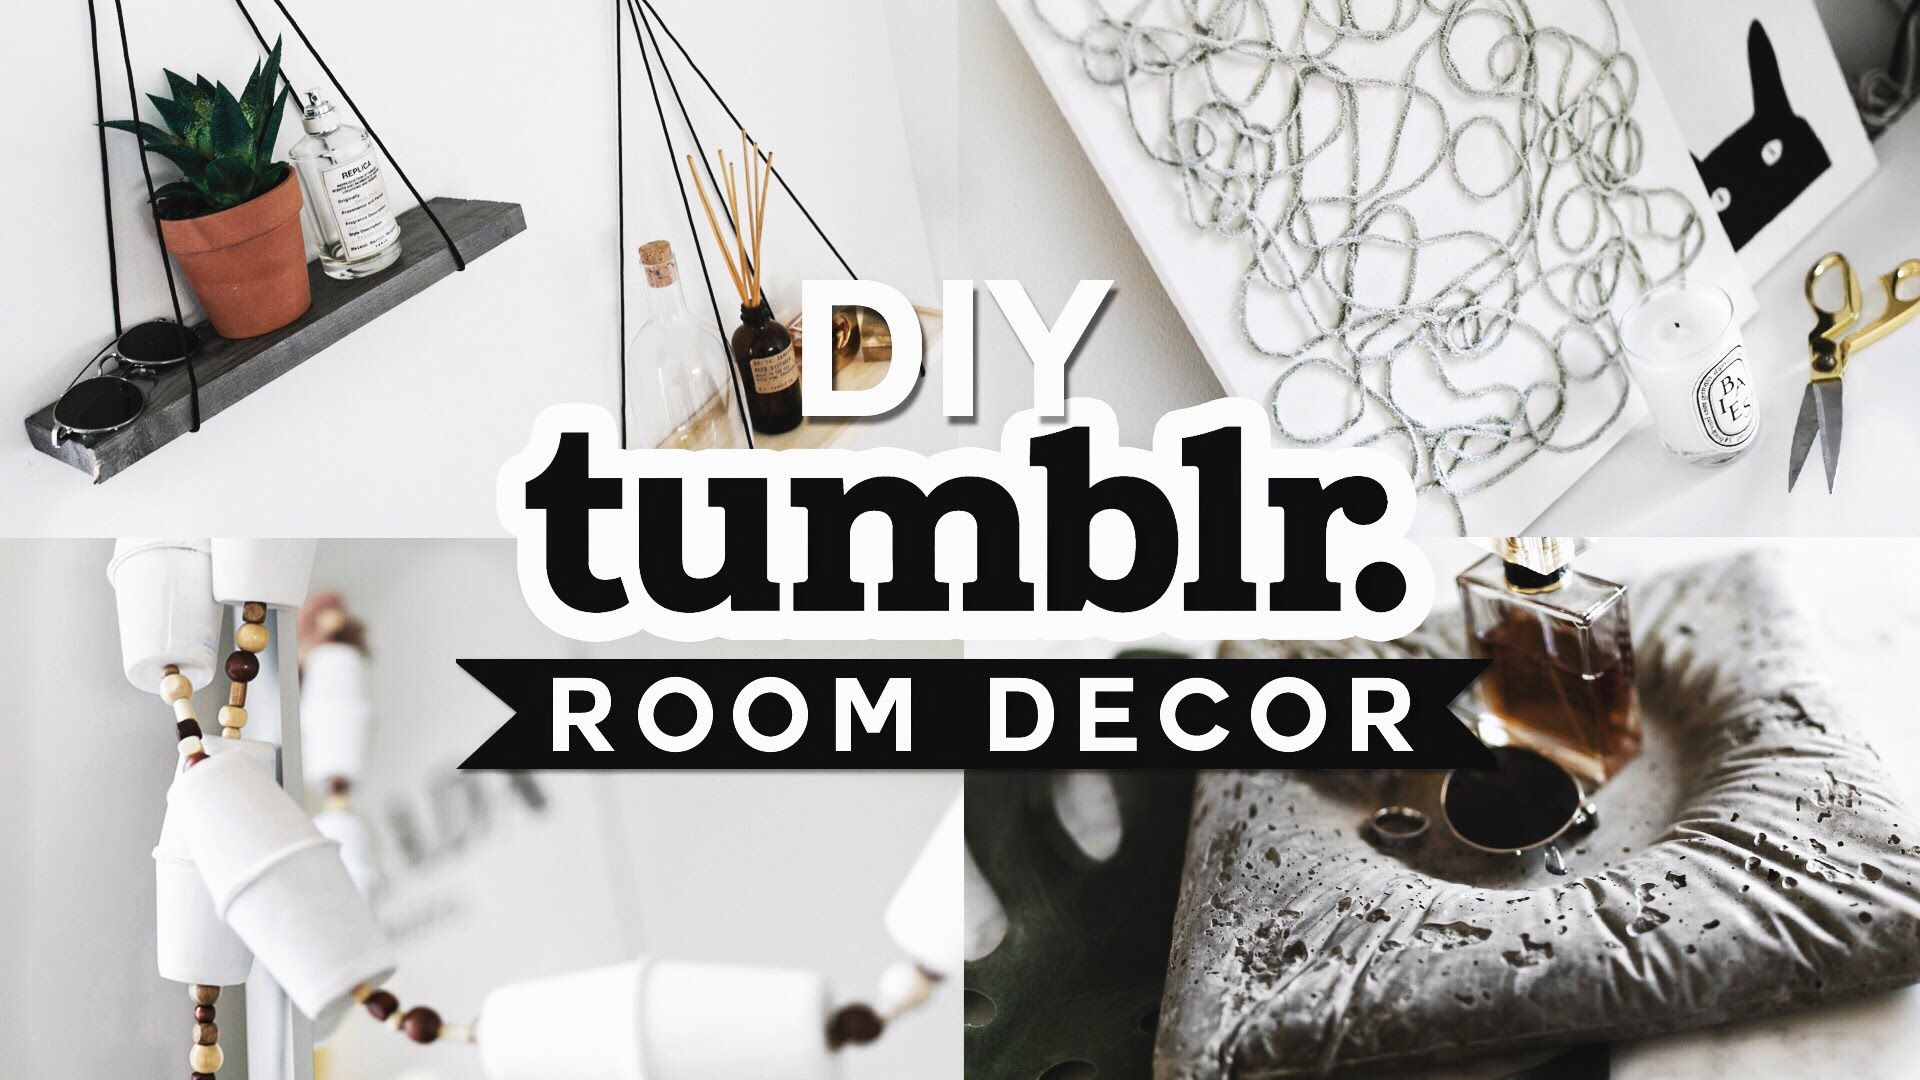 Diy Room Decorations Tumblr Inspired Tumblr Room Decor Room